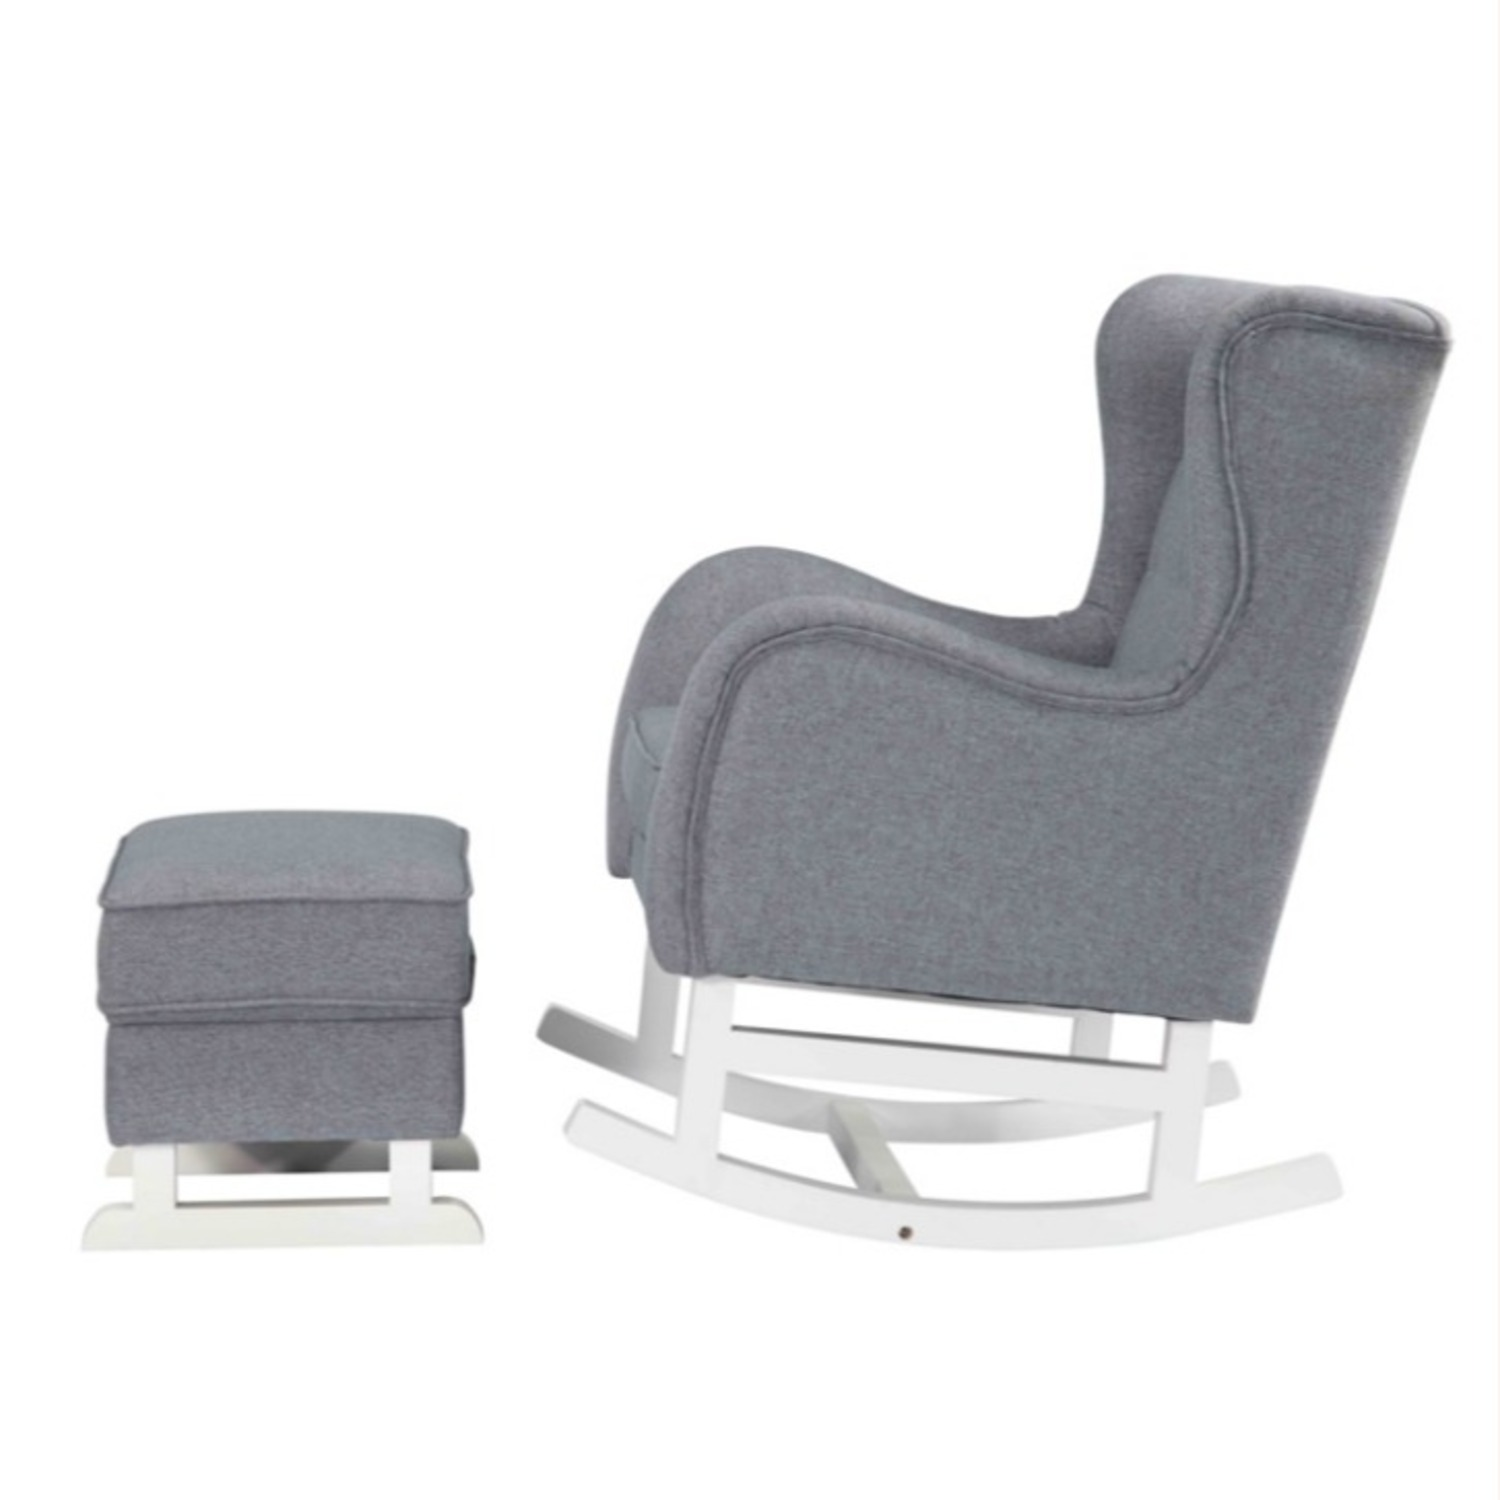 Baby Lounge Chair & Ottoman In Gray Fabric - image-4